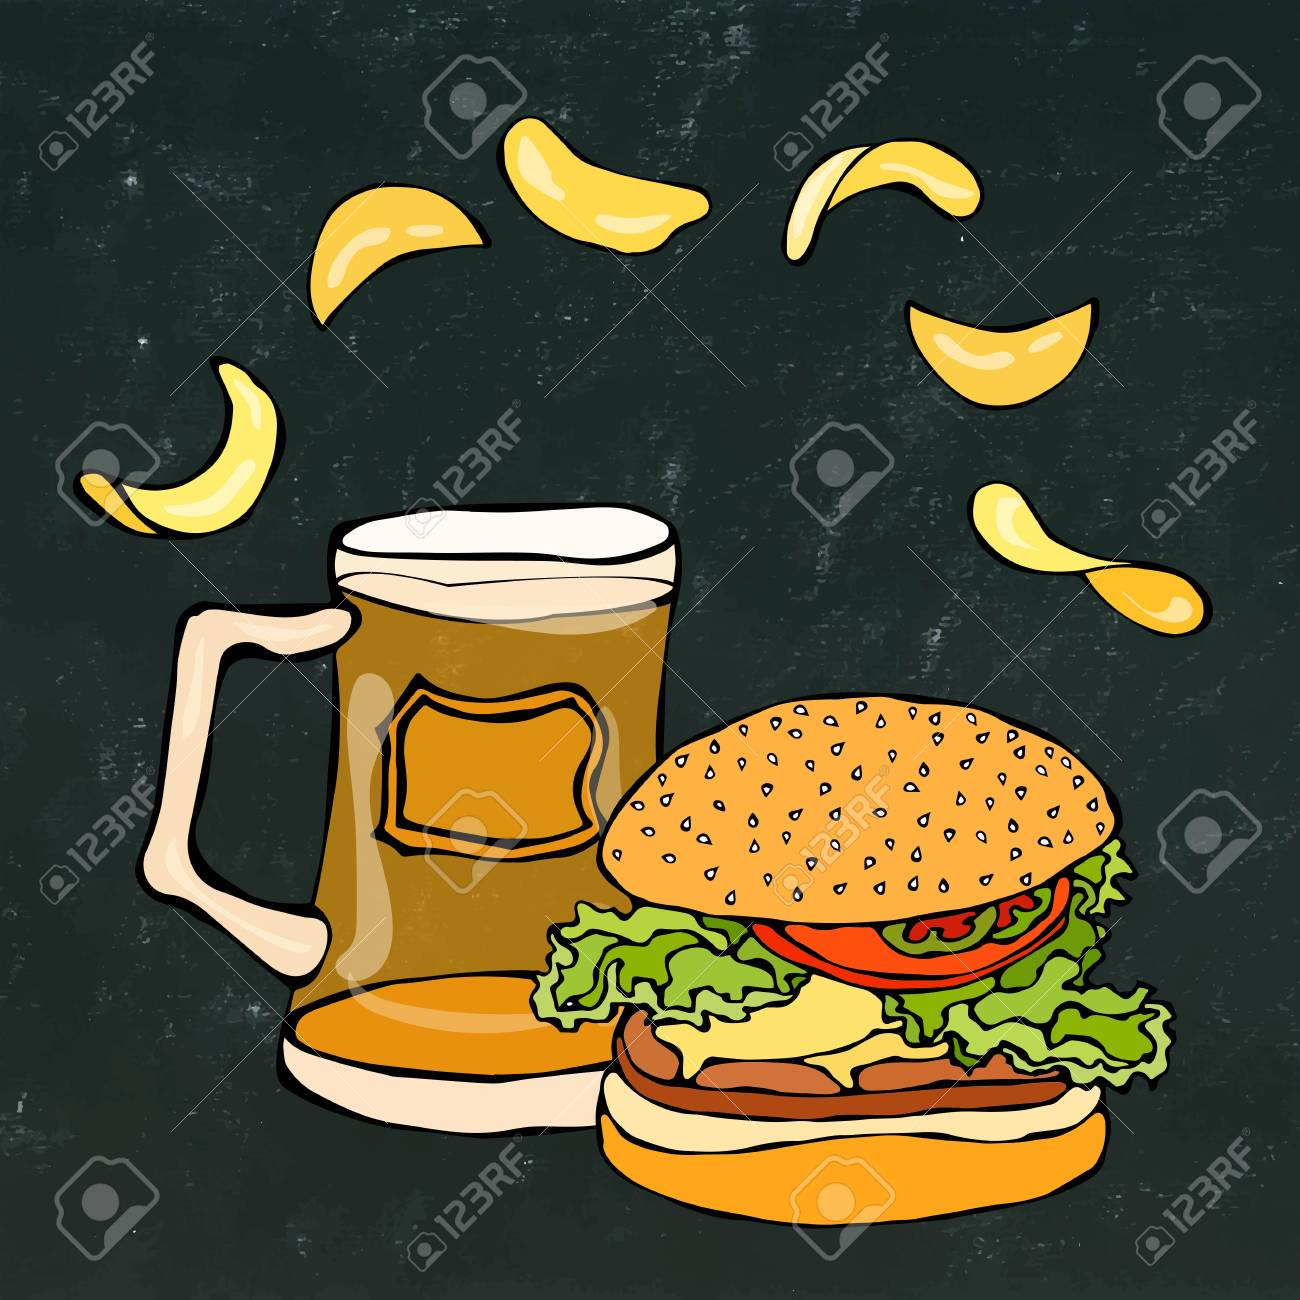 Big Hamburger Or Cheeseburger Beer Mug Or Pint And Potato Chips Royalty Free Cliparts Vectors And Stock Illustration Image 80763297